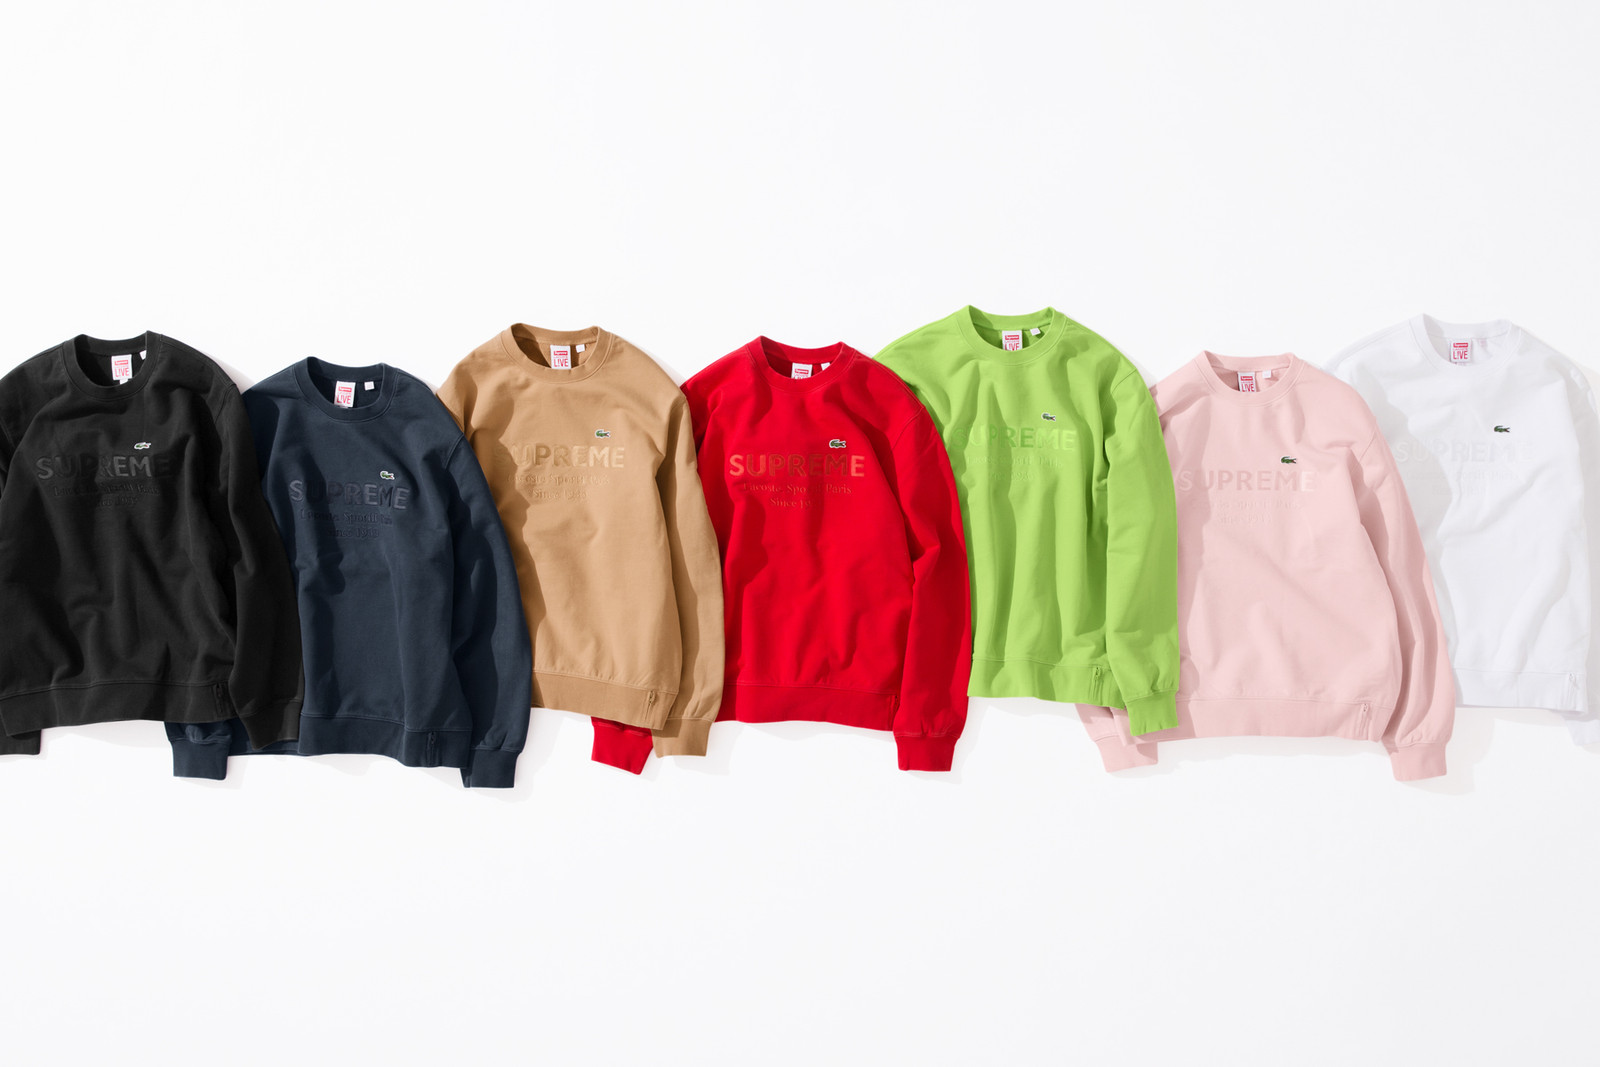 Supreme Spring/Summer 2018 Drop 8 Release Info cherry los angeles a-cold-wall nonnative nike slam jam assc anti social social club bape a bathing ape acronym alexander wang supreme lacoste